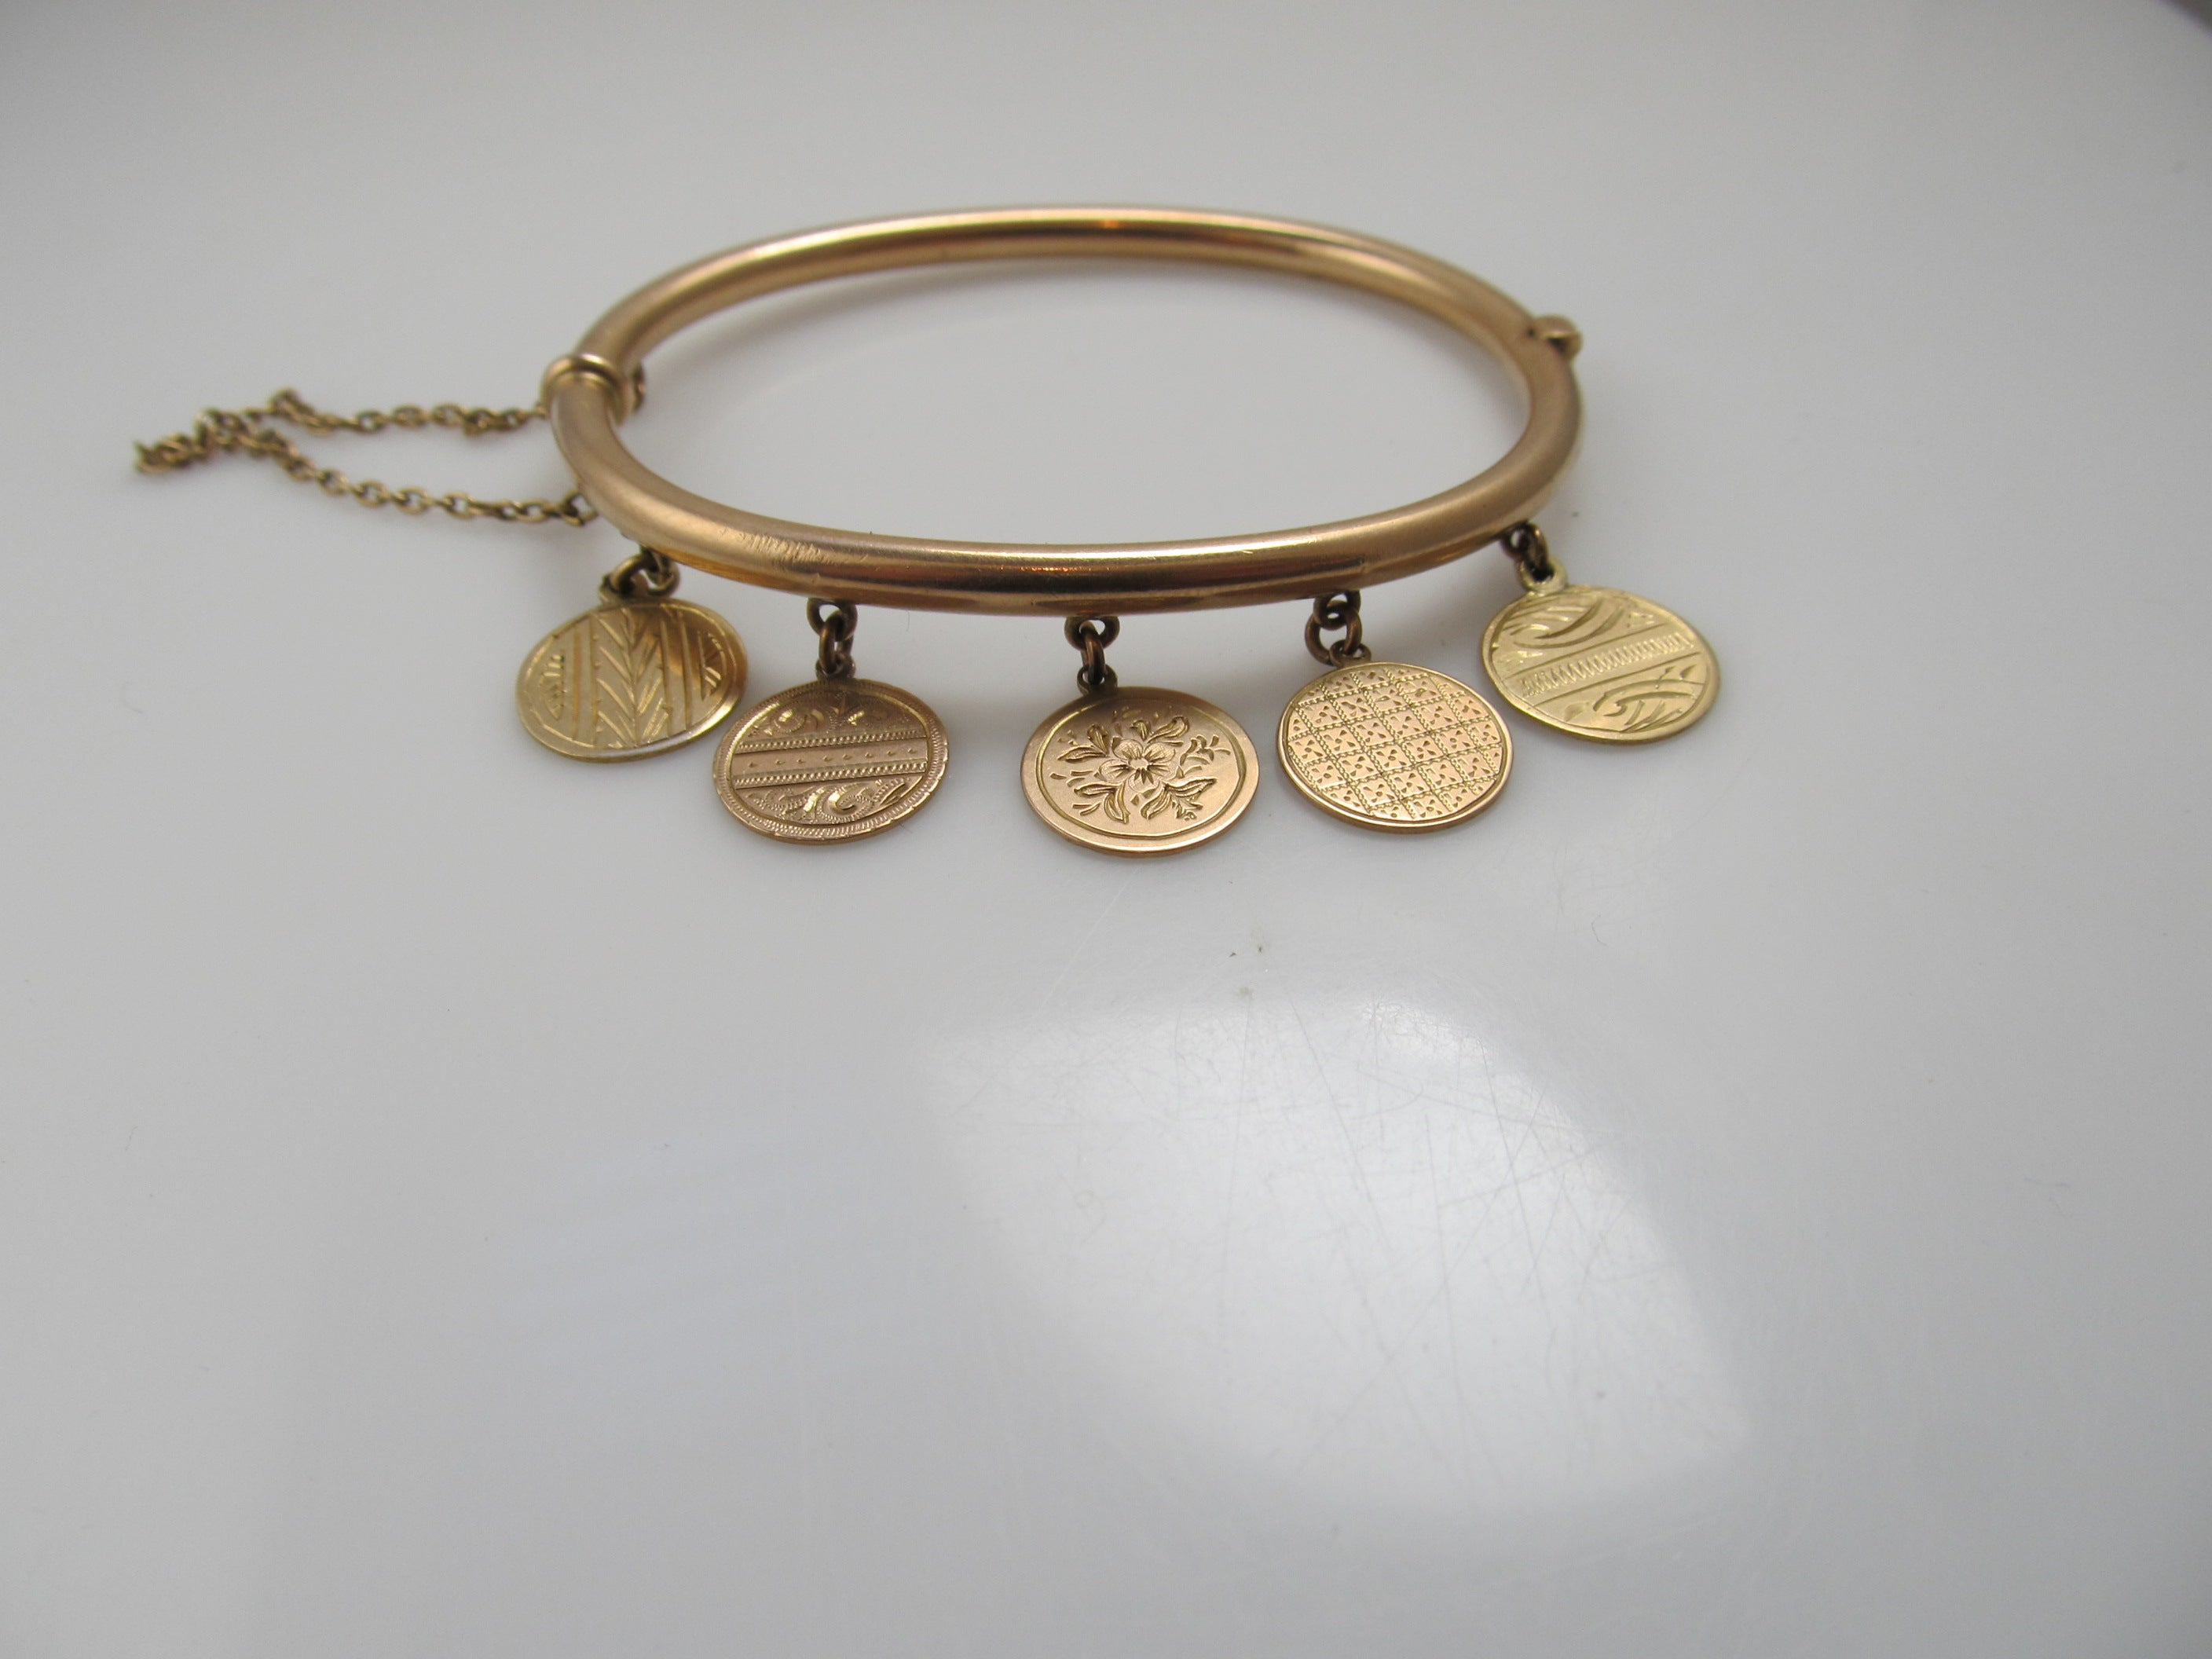 Antique 10k rose gold charm bangle bracelet